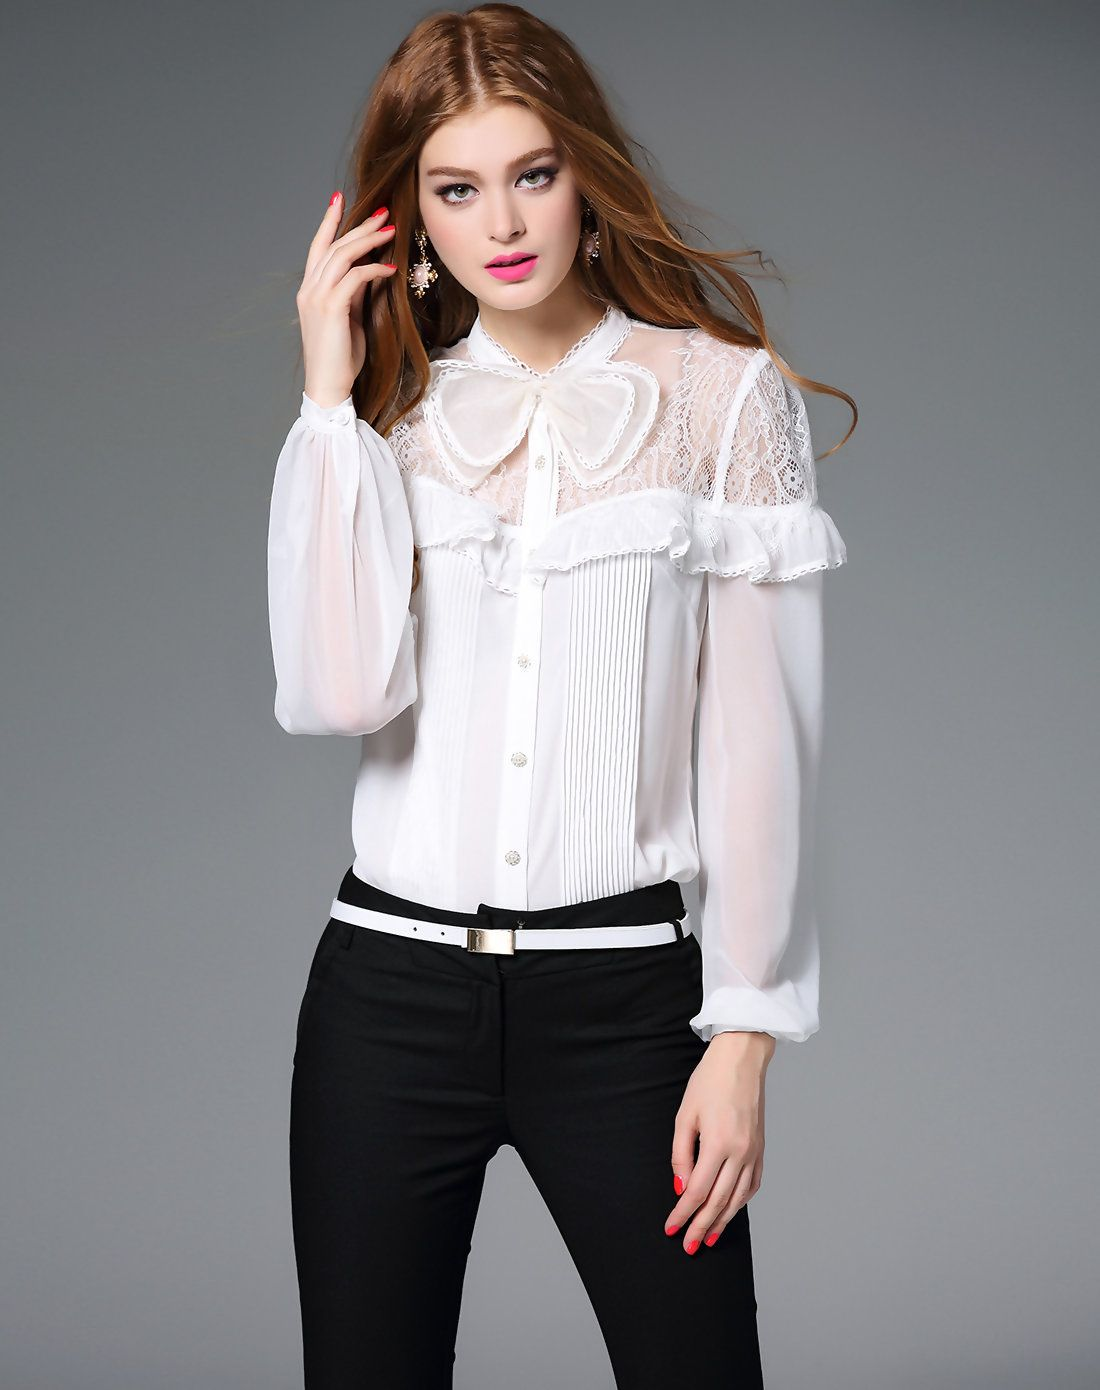 7dfea7fb40dc8 Top Quality New 2017 Autumn Blouses Women Lace Patchwork Bow Collar Long  Sleeve Shirt Ladies Black White Sexy Shirt Blouses XL